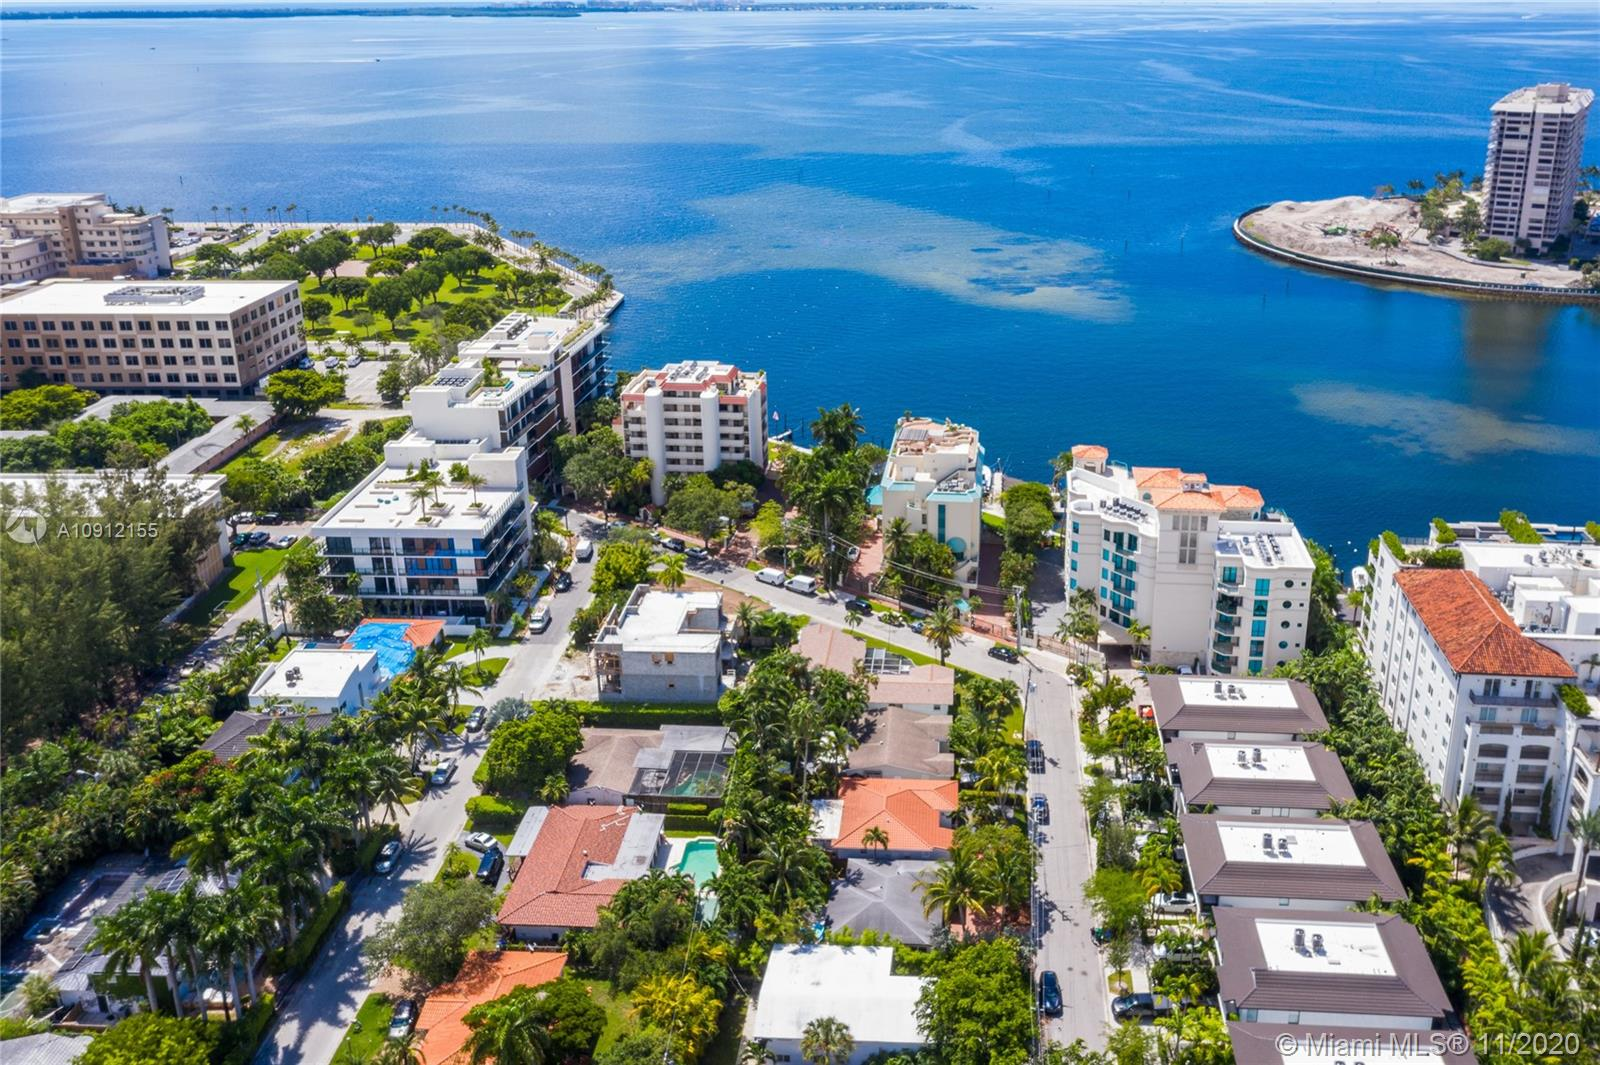 Price to Sell!!! Don't miss this charming single family home located in the prime area of North Coconut Grove, with a fully fenced in private back yard. Enjoy a short walk to your very own riparian to drop in your paddle board or canoe from your private Ocean access for the Glencoe neighborhood owners only to the bay. This home has been recently update to a beautiful contemporary style and lovely terrazzo floors. You can take a short walk to Kennedy park, minutes from Cocowalk and downtown. The plenty of space here so that the den can easily be converted to a 3rd bedroom and bath. This is a great opportunity to buy a great home surrounded by multi million dollar homes or tear this one down build your own if you like. Contact us today for a private showing.